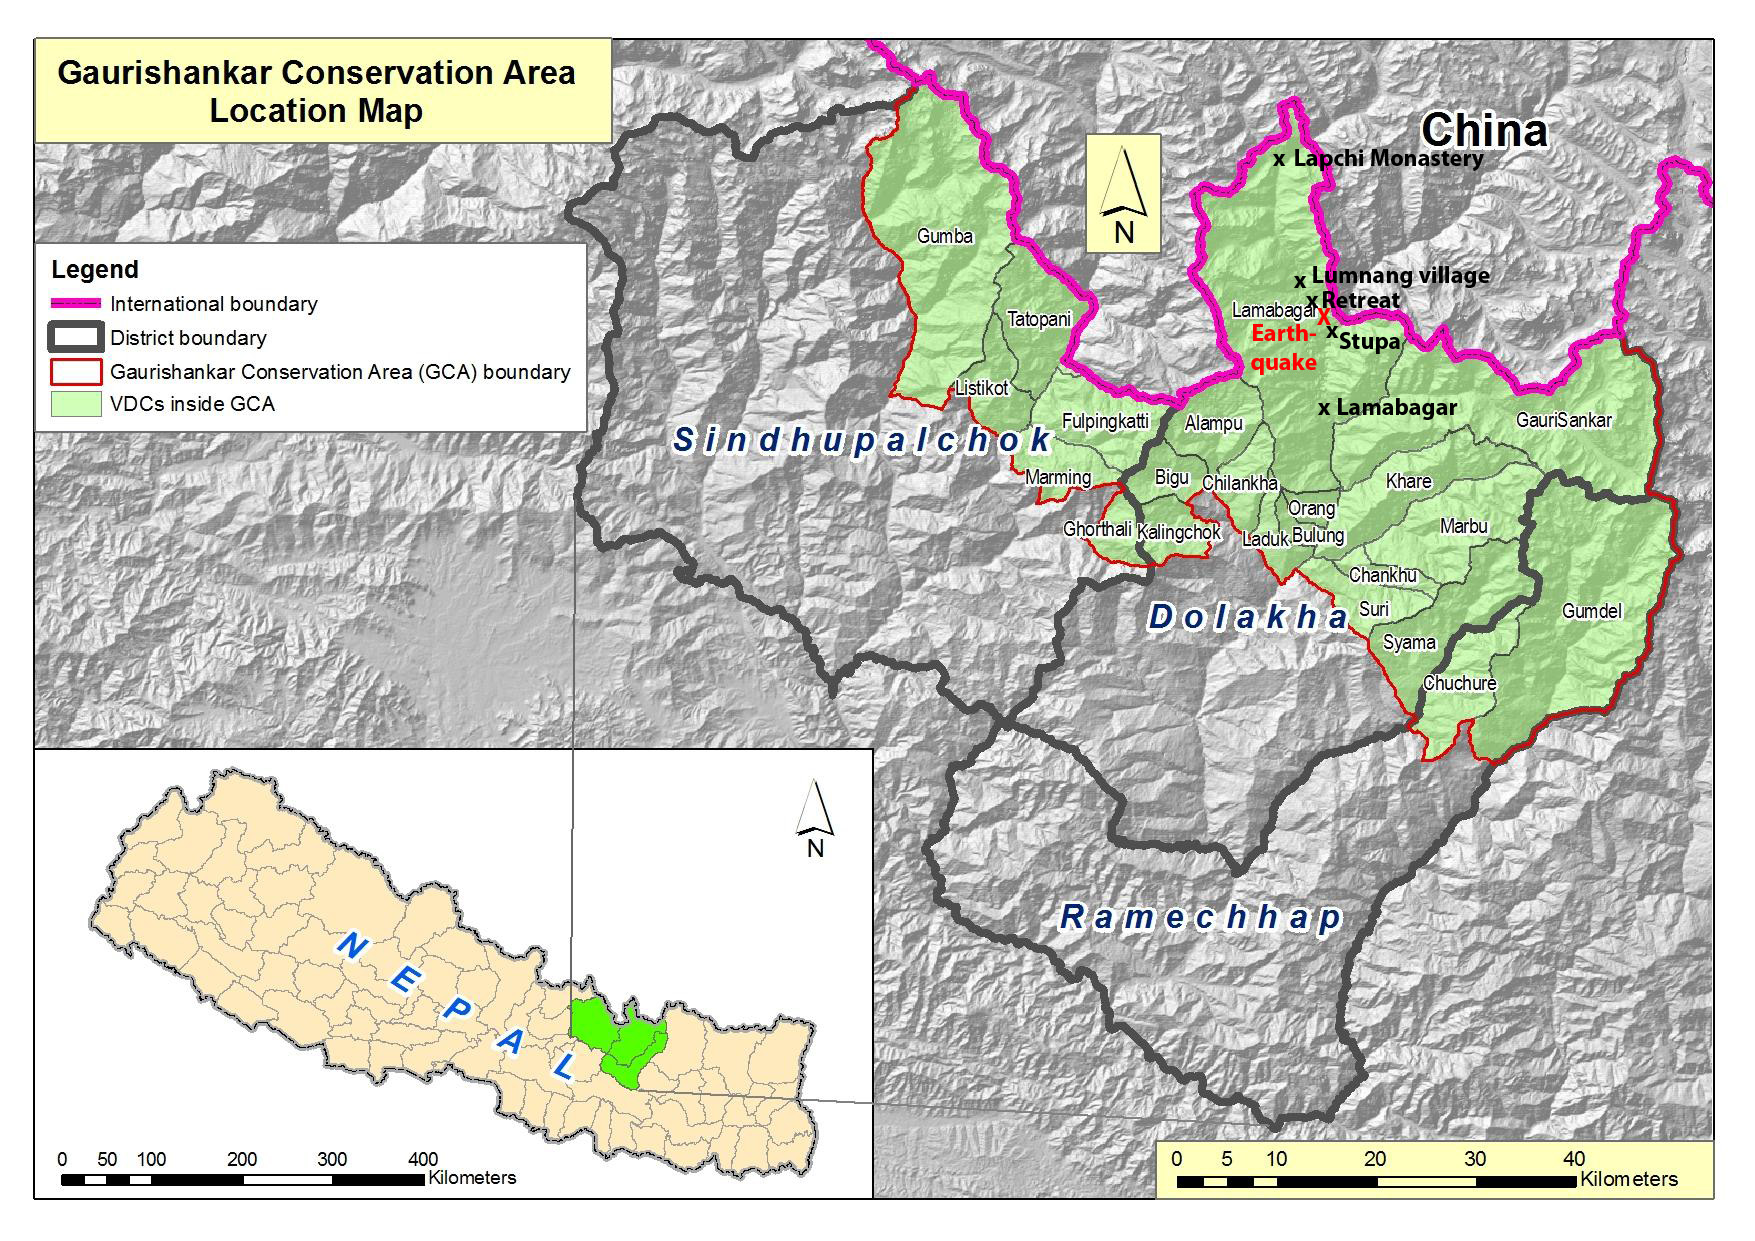 Map of Gaurishankar Conservation area (GCA) including respective Village Development Committees (VDC's) and localities within the Tamakoshi River valley that are mentioned in this post.